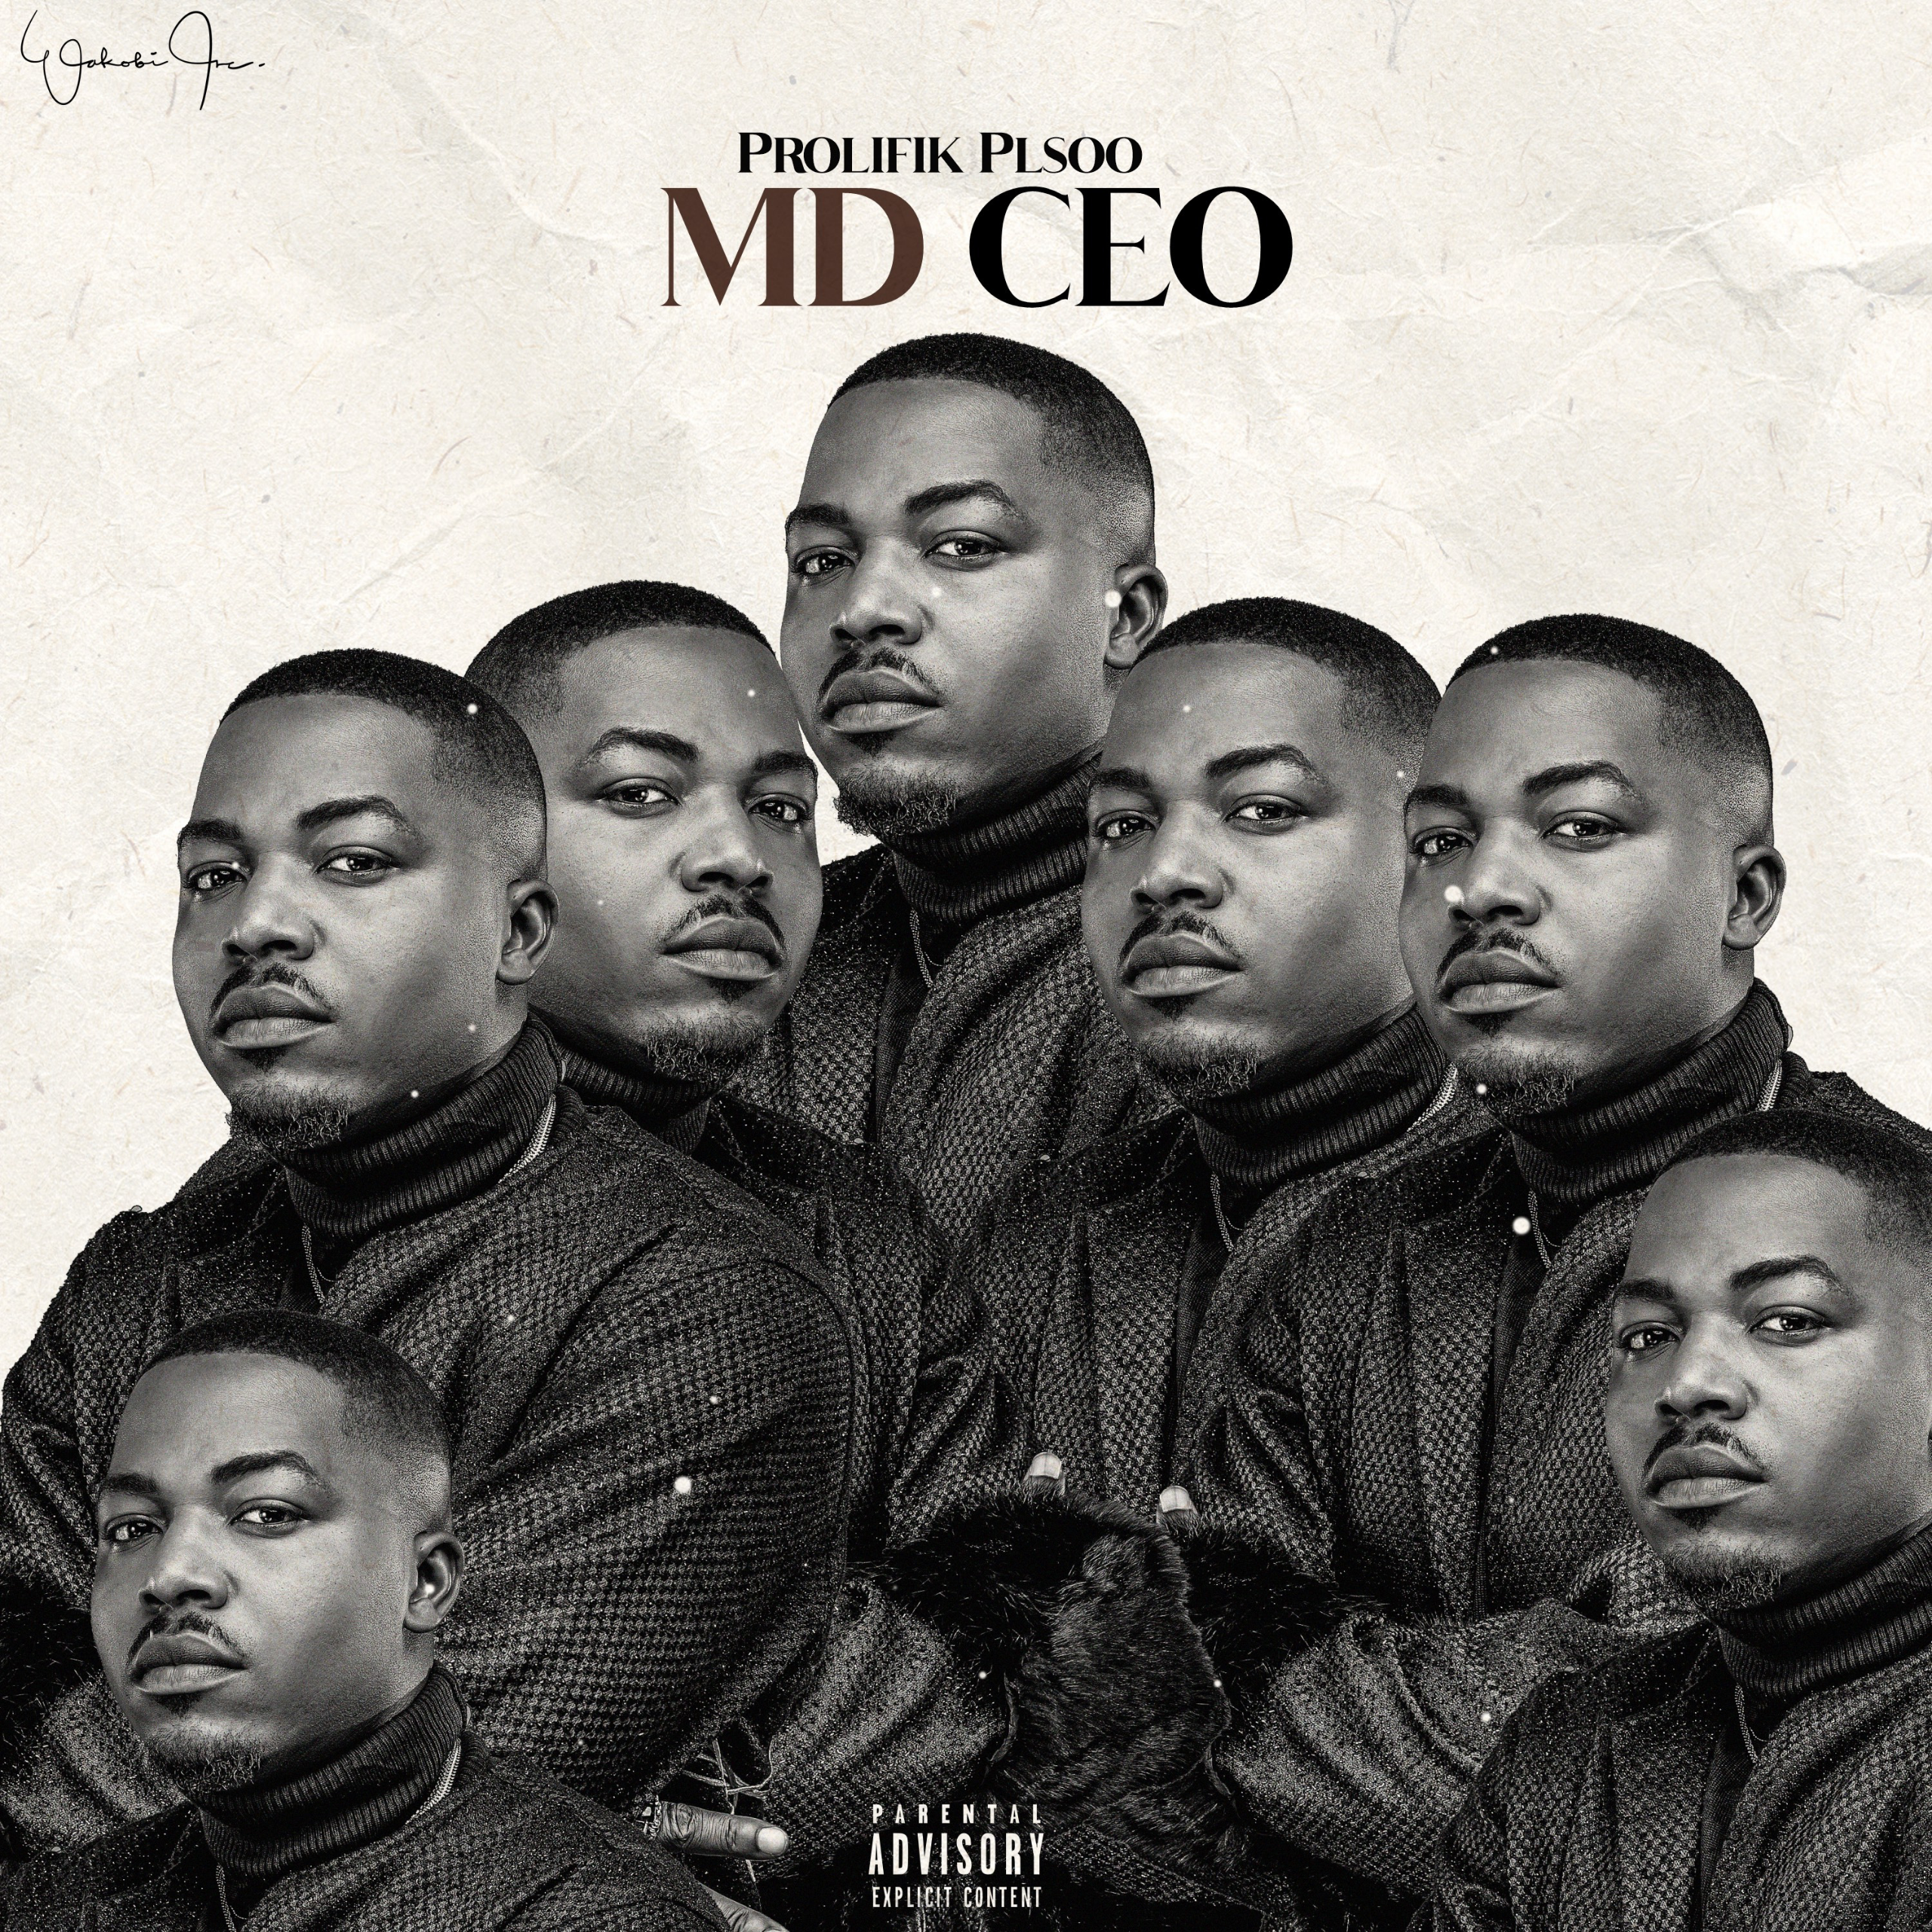 """Prolifik Plsoo Delivers Artistic Brilliance In New Ep: """"MD CEO"""""""